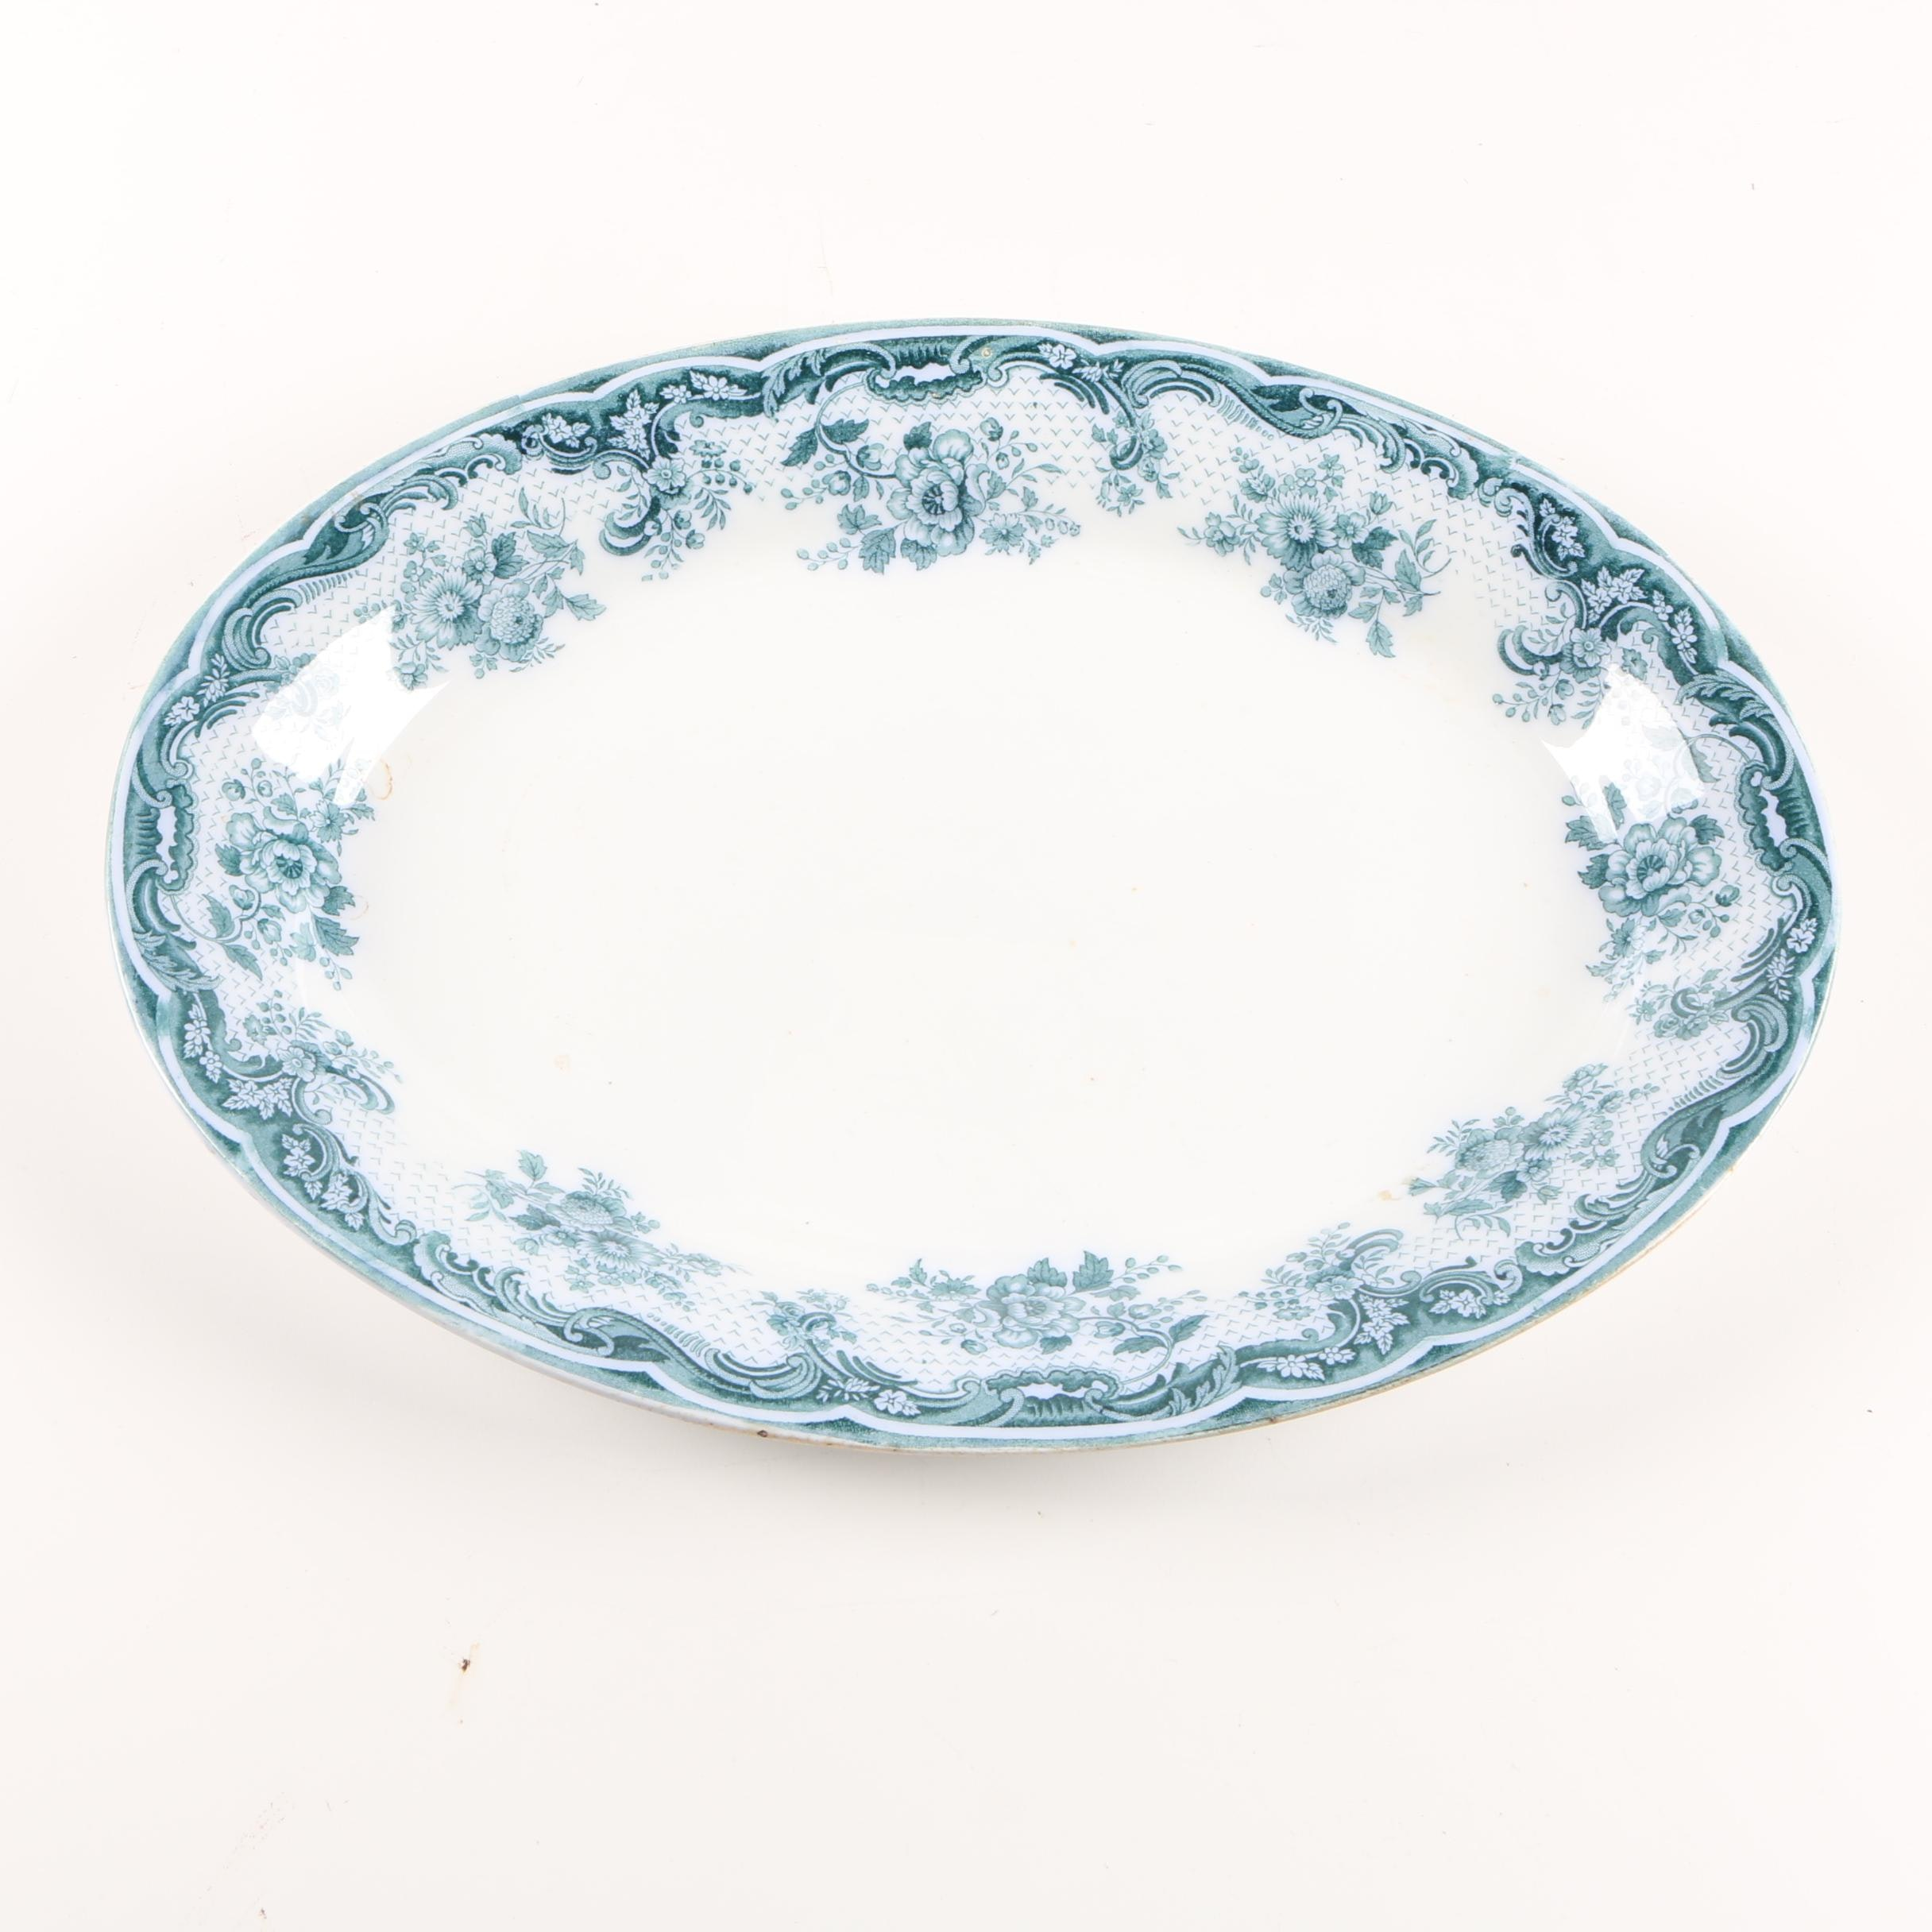 "Bourne & Leigh Royal Semi-Porcelain ""Ophir"" Platter"